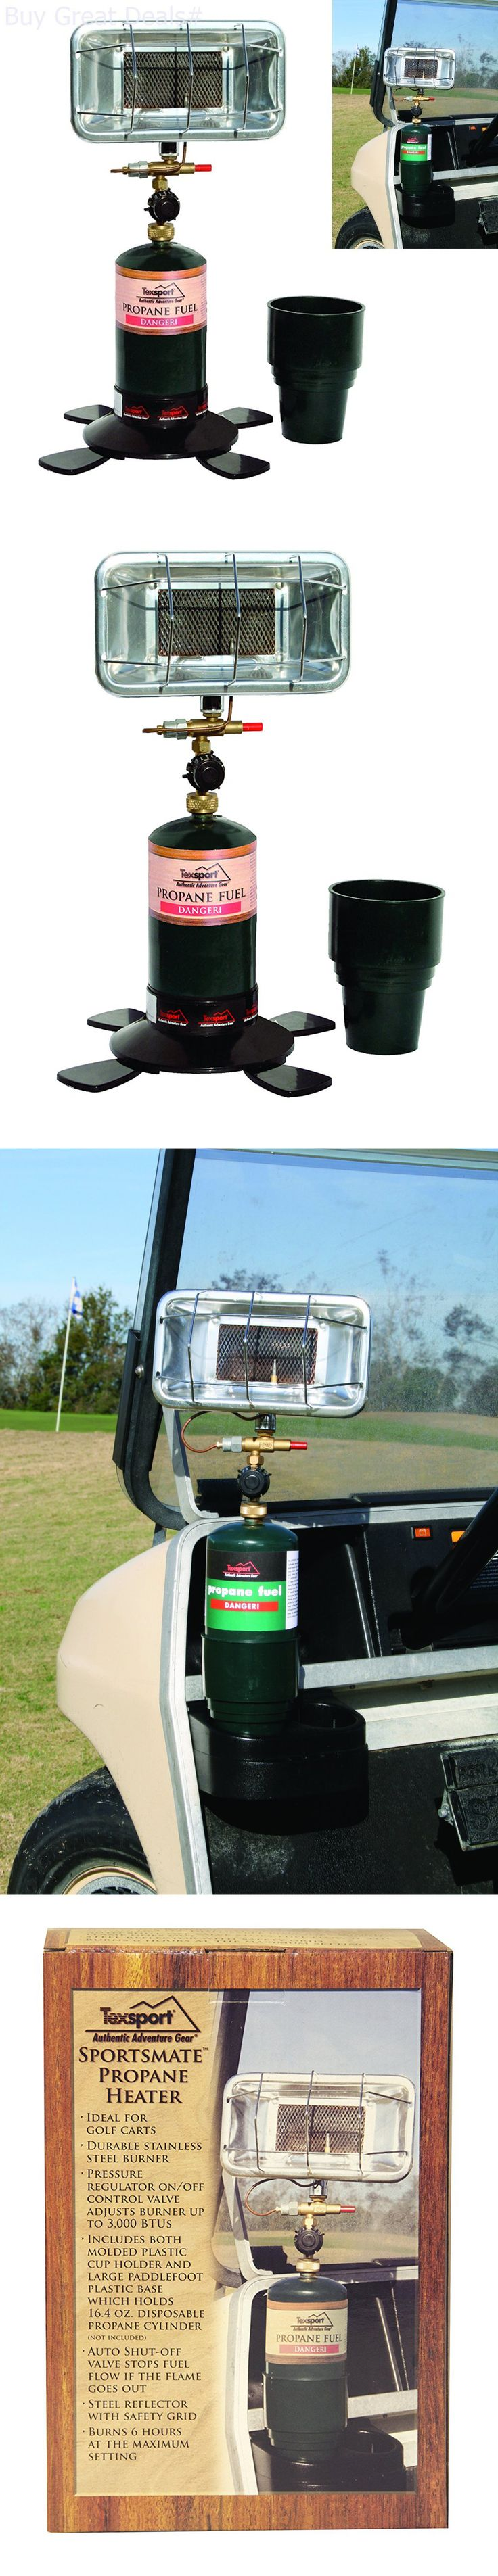 Generators and Heaters 16039: Texsport Portable Propane Heater For Golf Cart, Camping, Fishing Boat, Outdoor -> BUY IT NOW ONLY: $60.9 on eBay!